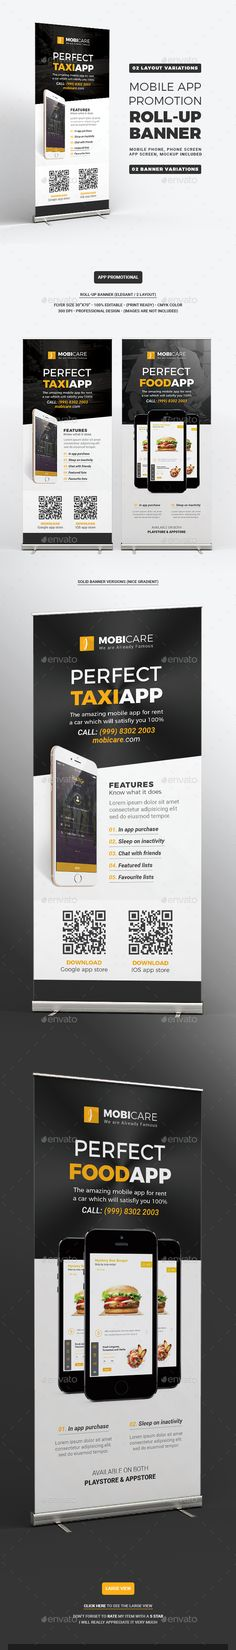 Mobile App Promotion Roll-up Banner Fully editable layers can perfectly consume your own texts and images in a blink. This template includes 2 different layout styles. We've done the hard work to let you focus on your core business. Standing Banner Design, Communication, App Promotion, Android App Design, Logo Image, Rollup Banner, Cool Business Cards, Postcard Design, Signage Design